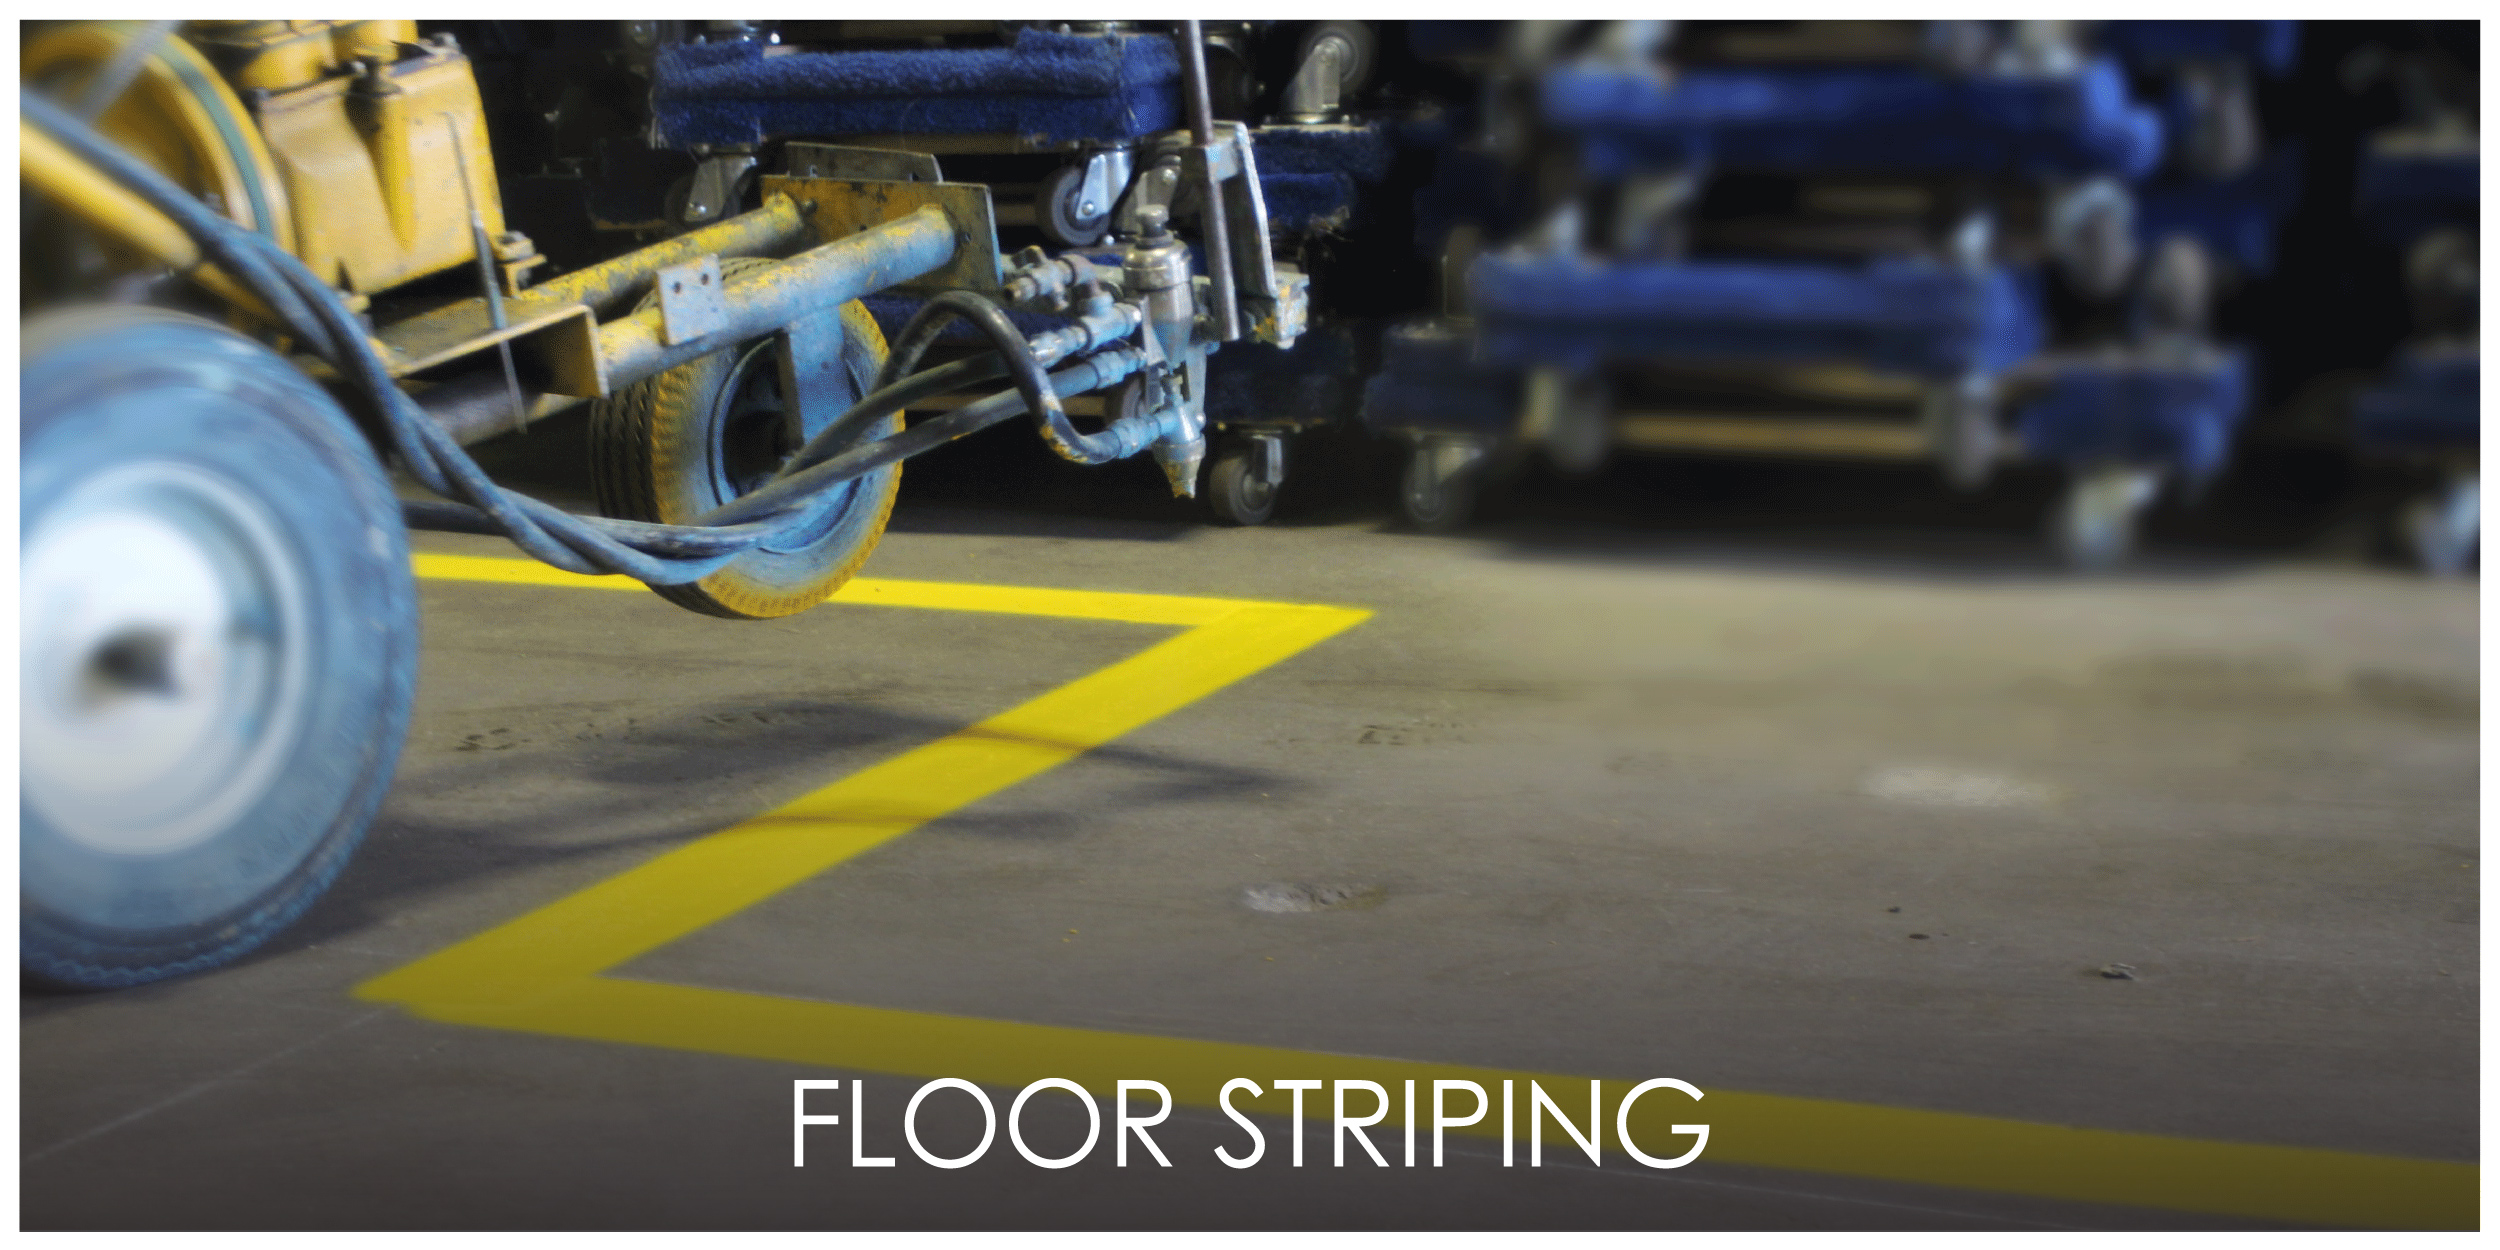 FloorStriping-Front-Page.jpg